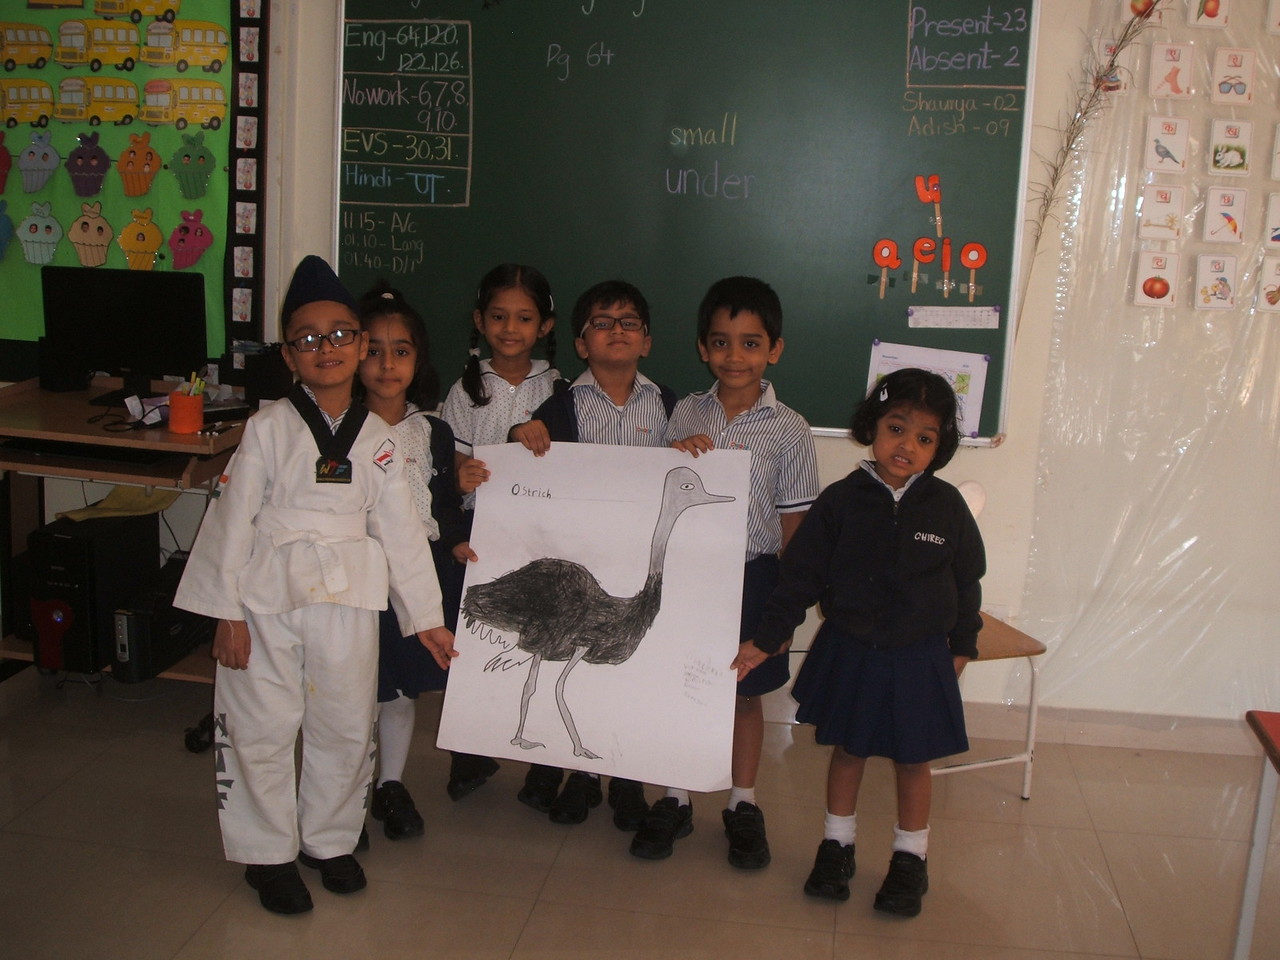 DEVELOPING LANGUAGE AND PRESENTATION SKILLS - GROUP ACTIVITY ON THE TOPIC FLIGHTY FRIENDS